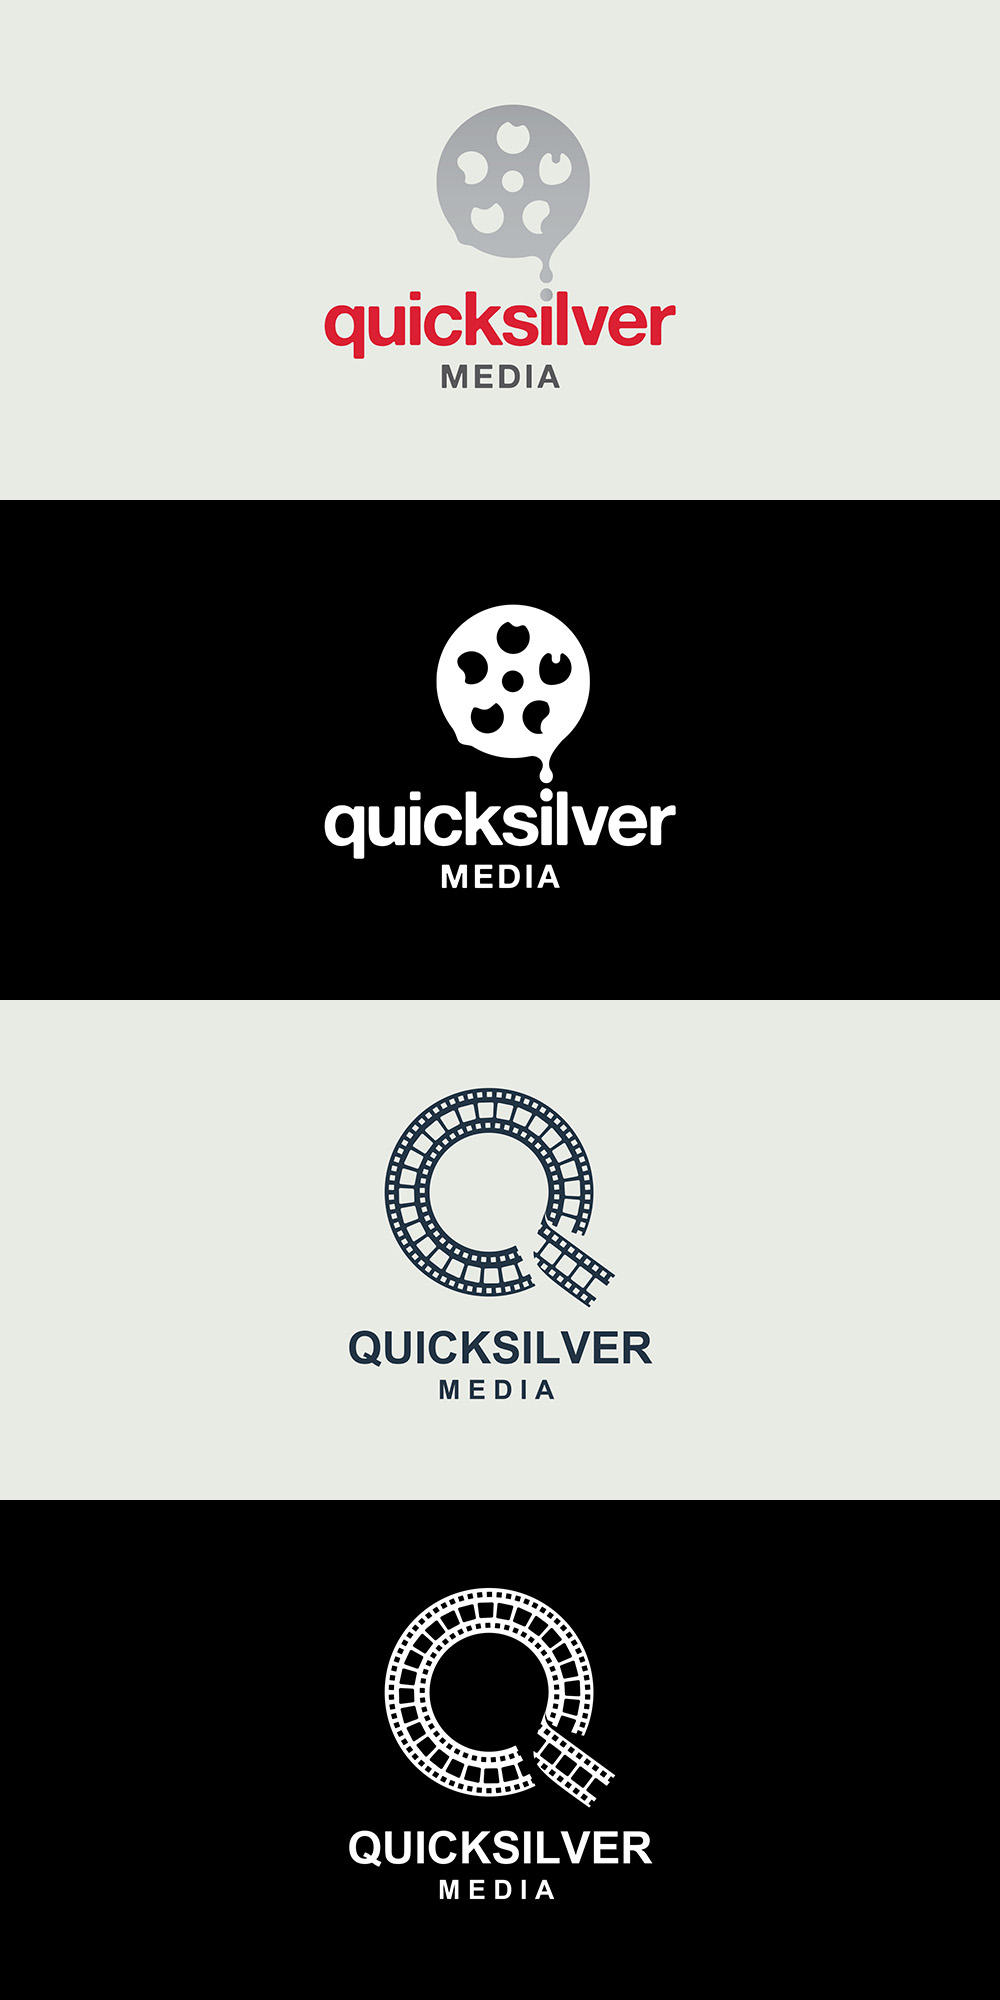 Quicksilver Media by samadarag